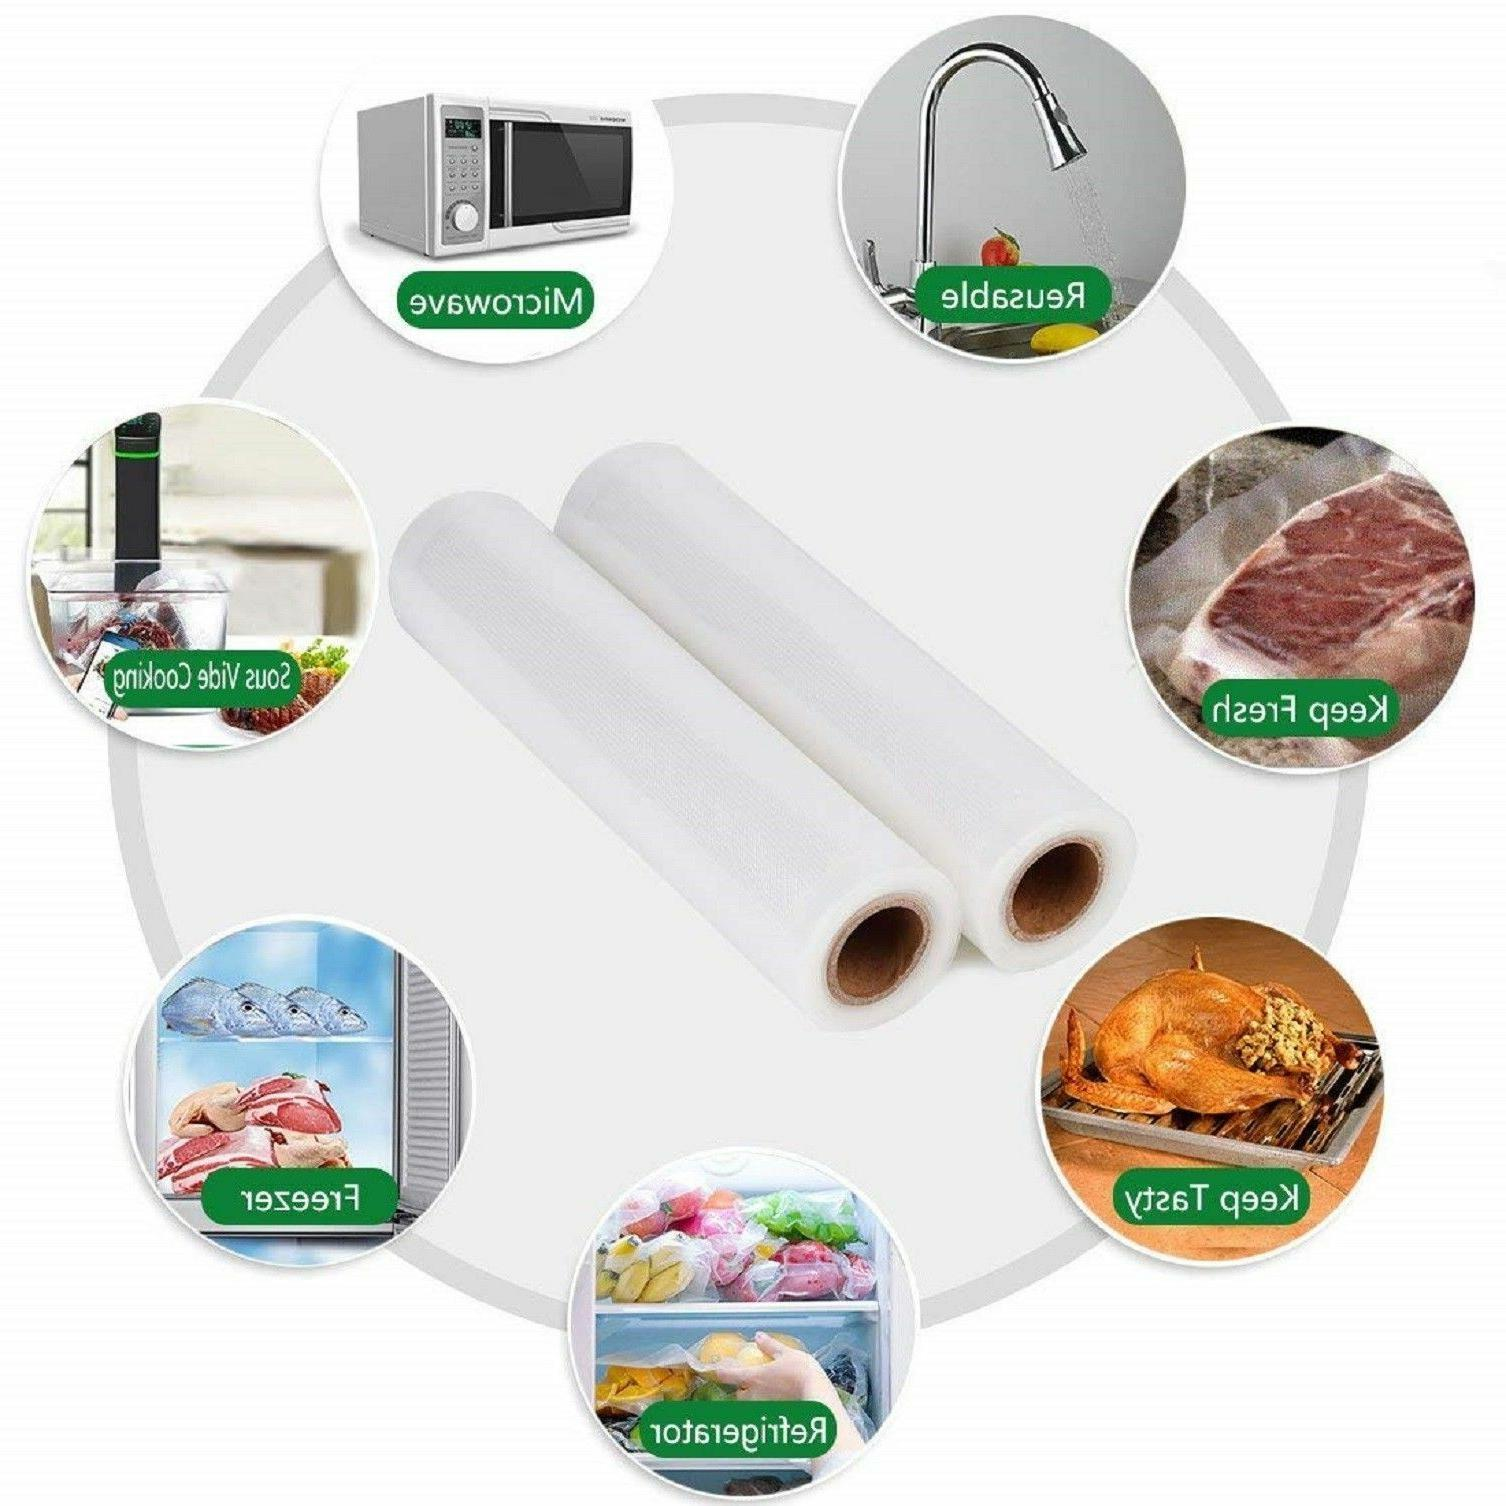 Vacuum Rolls Food Magic Seal Storage Food! Great $$ Saver